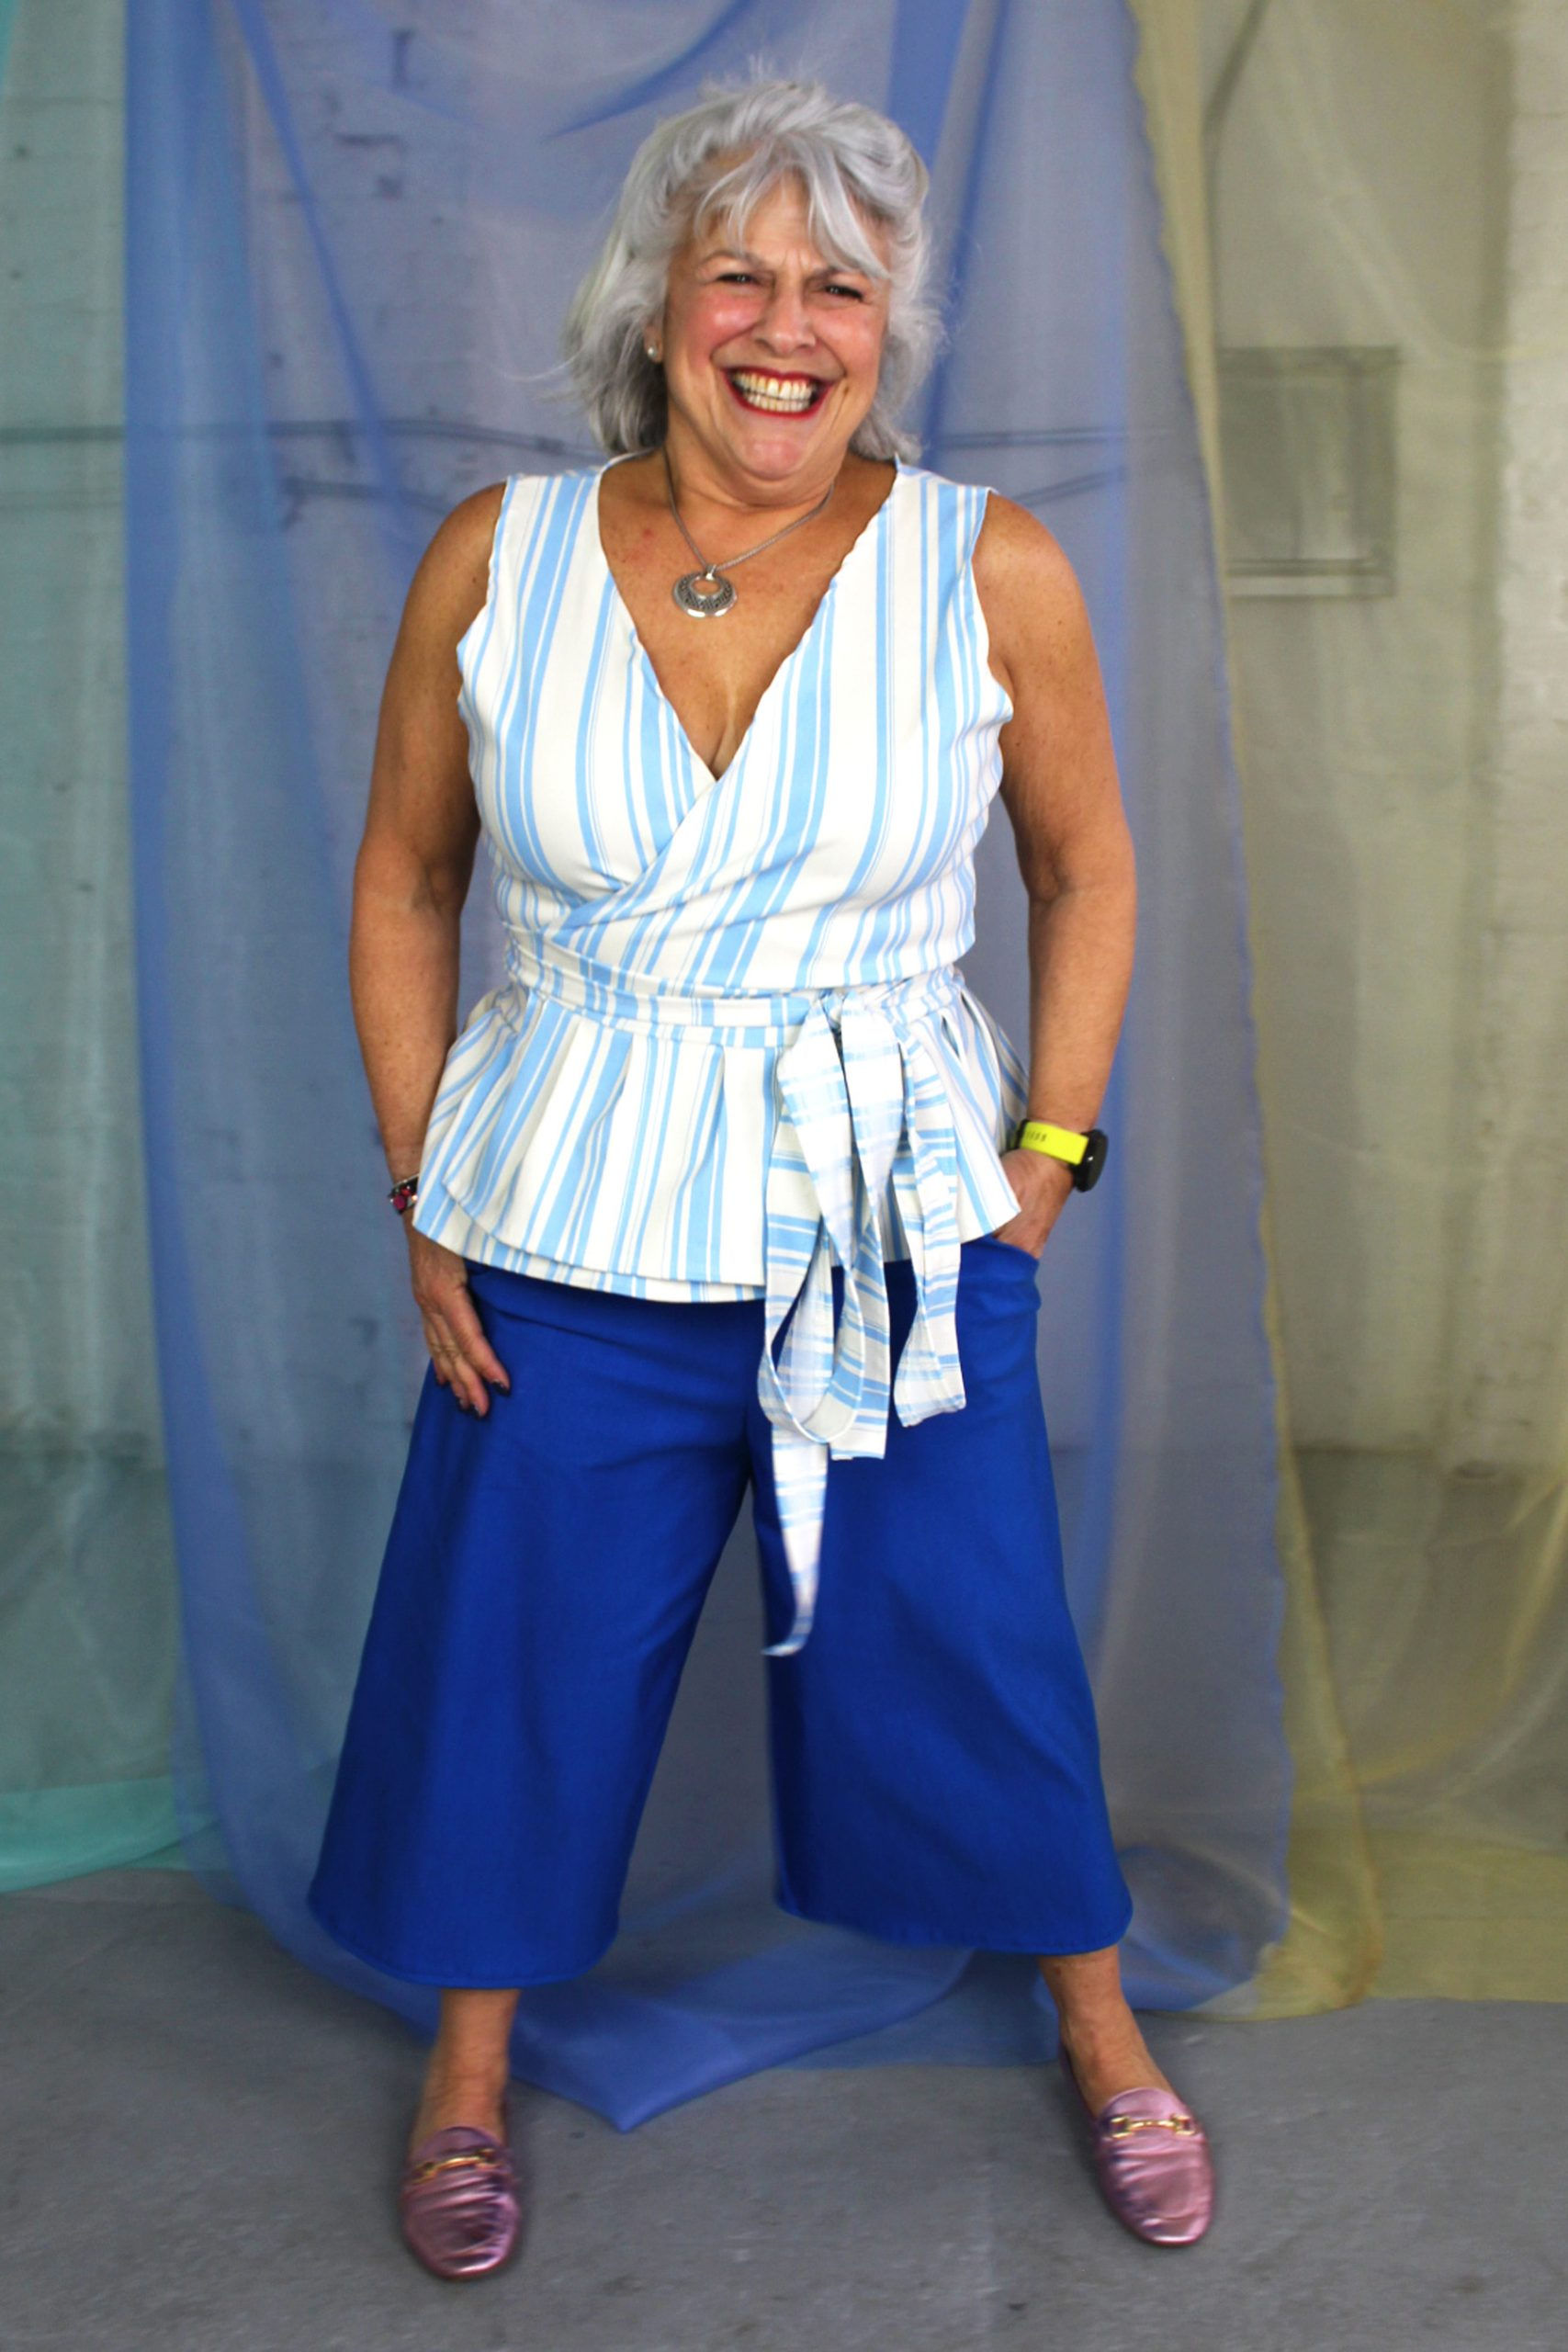 Inbetweenie size white short gray hair mature model in blue capri pants with pockets + white and blue striped cotton wrap top